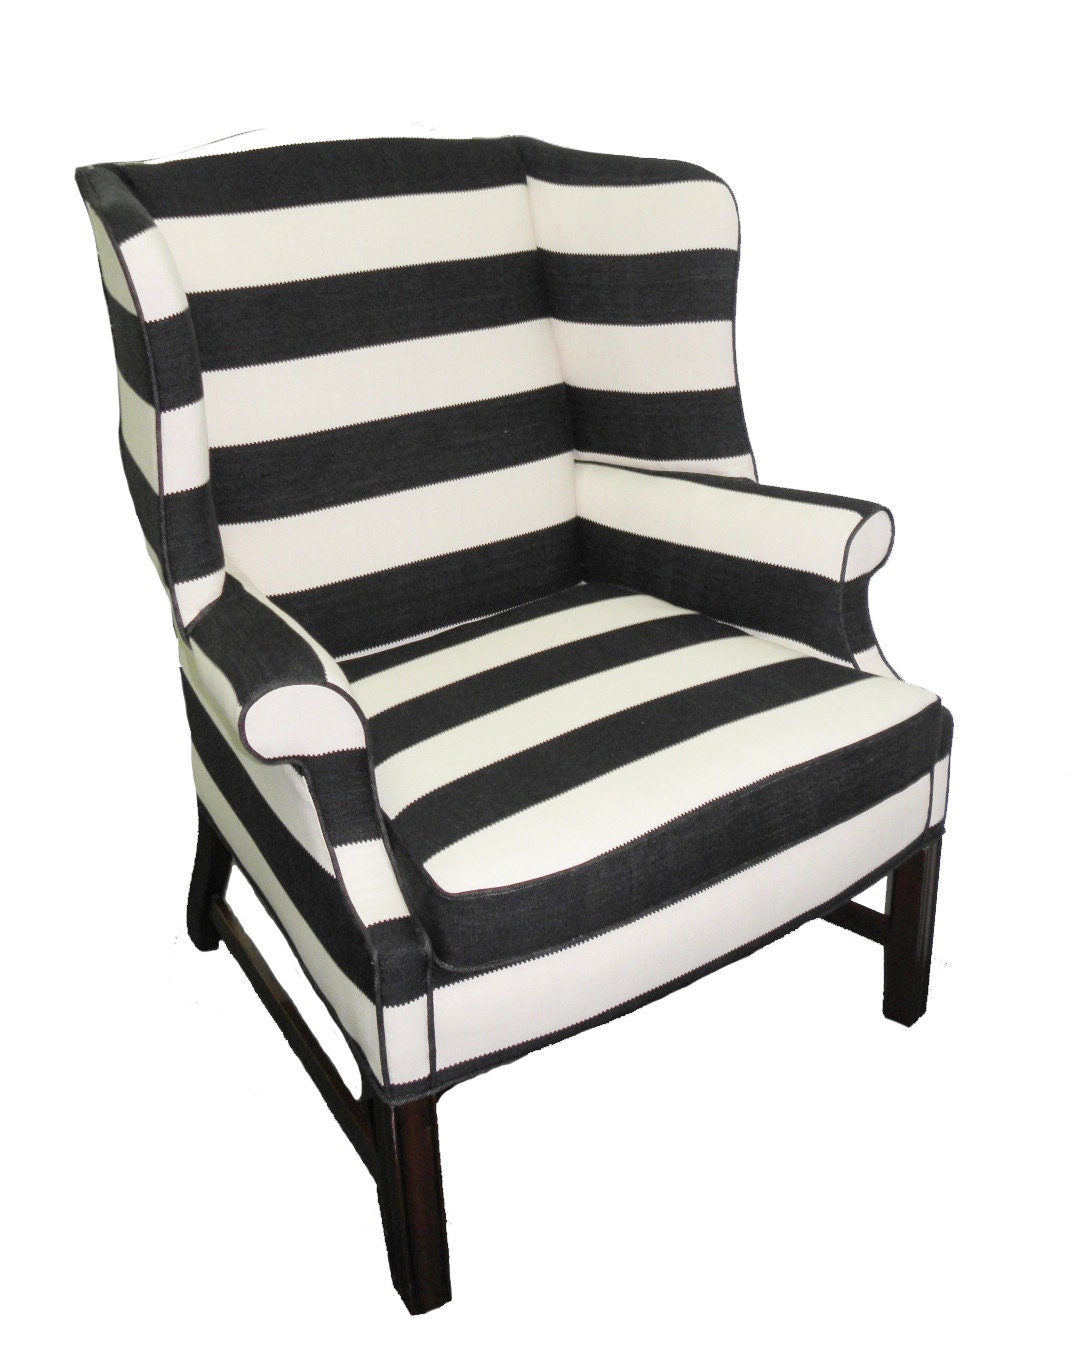 Upholstered Black and White Striped Chair – Haute Juice